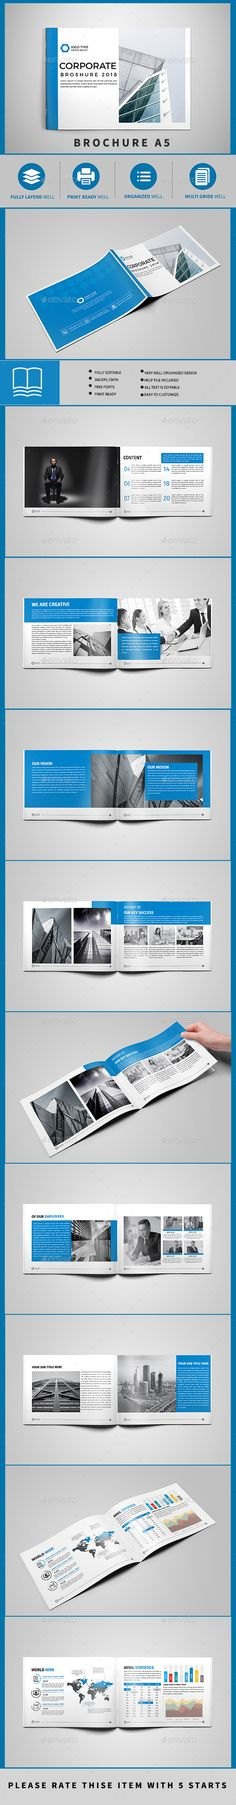 Brochure Template InDesign INDD - 16 Pages A5